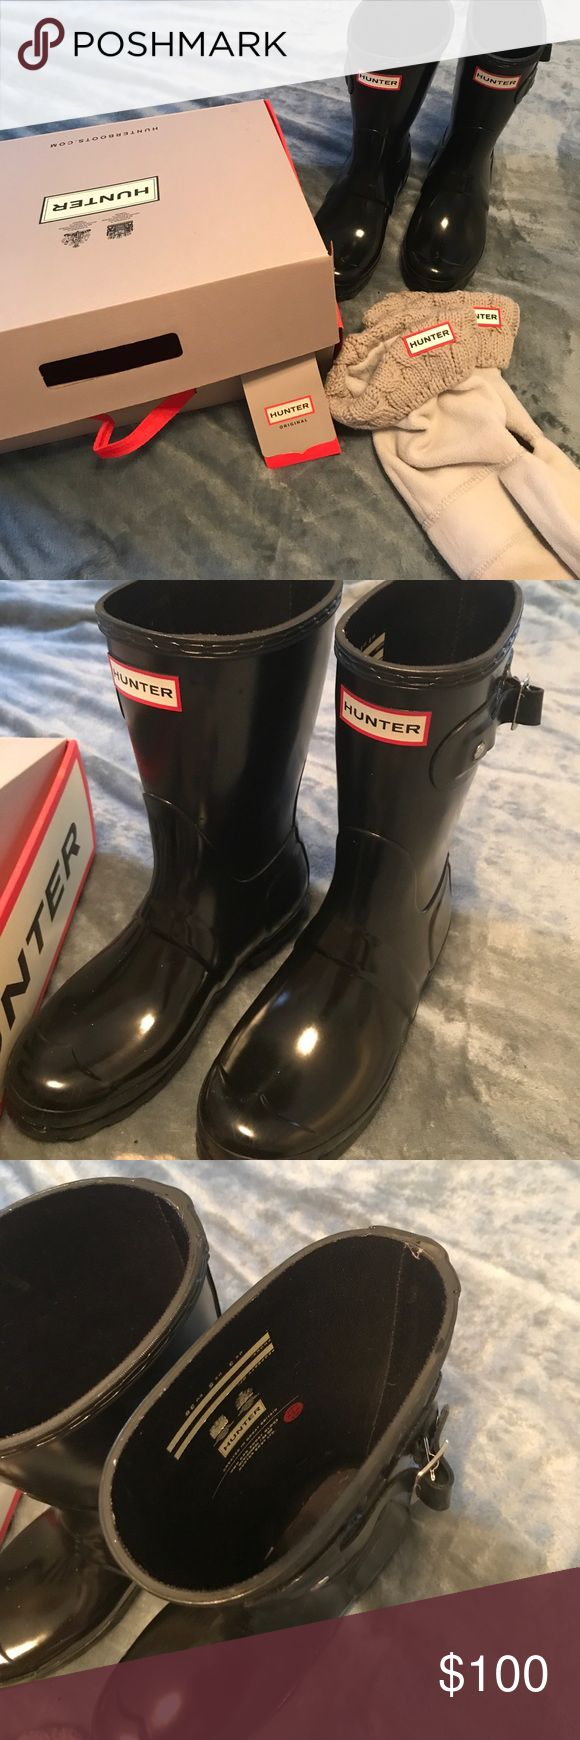 Hunter short black gloss boots Short black gloss Hunter boots with grey sock inserts with box Hunter Boots Shoes Winter & Rain Boots